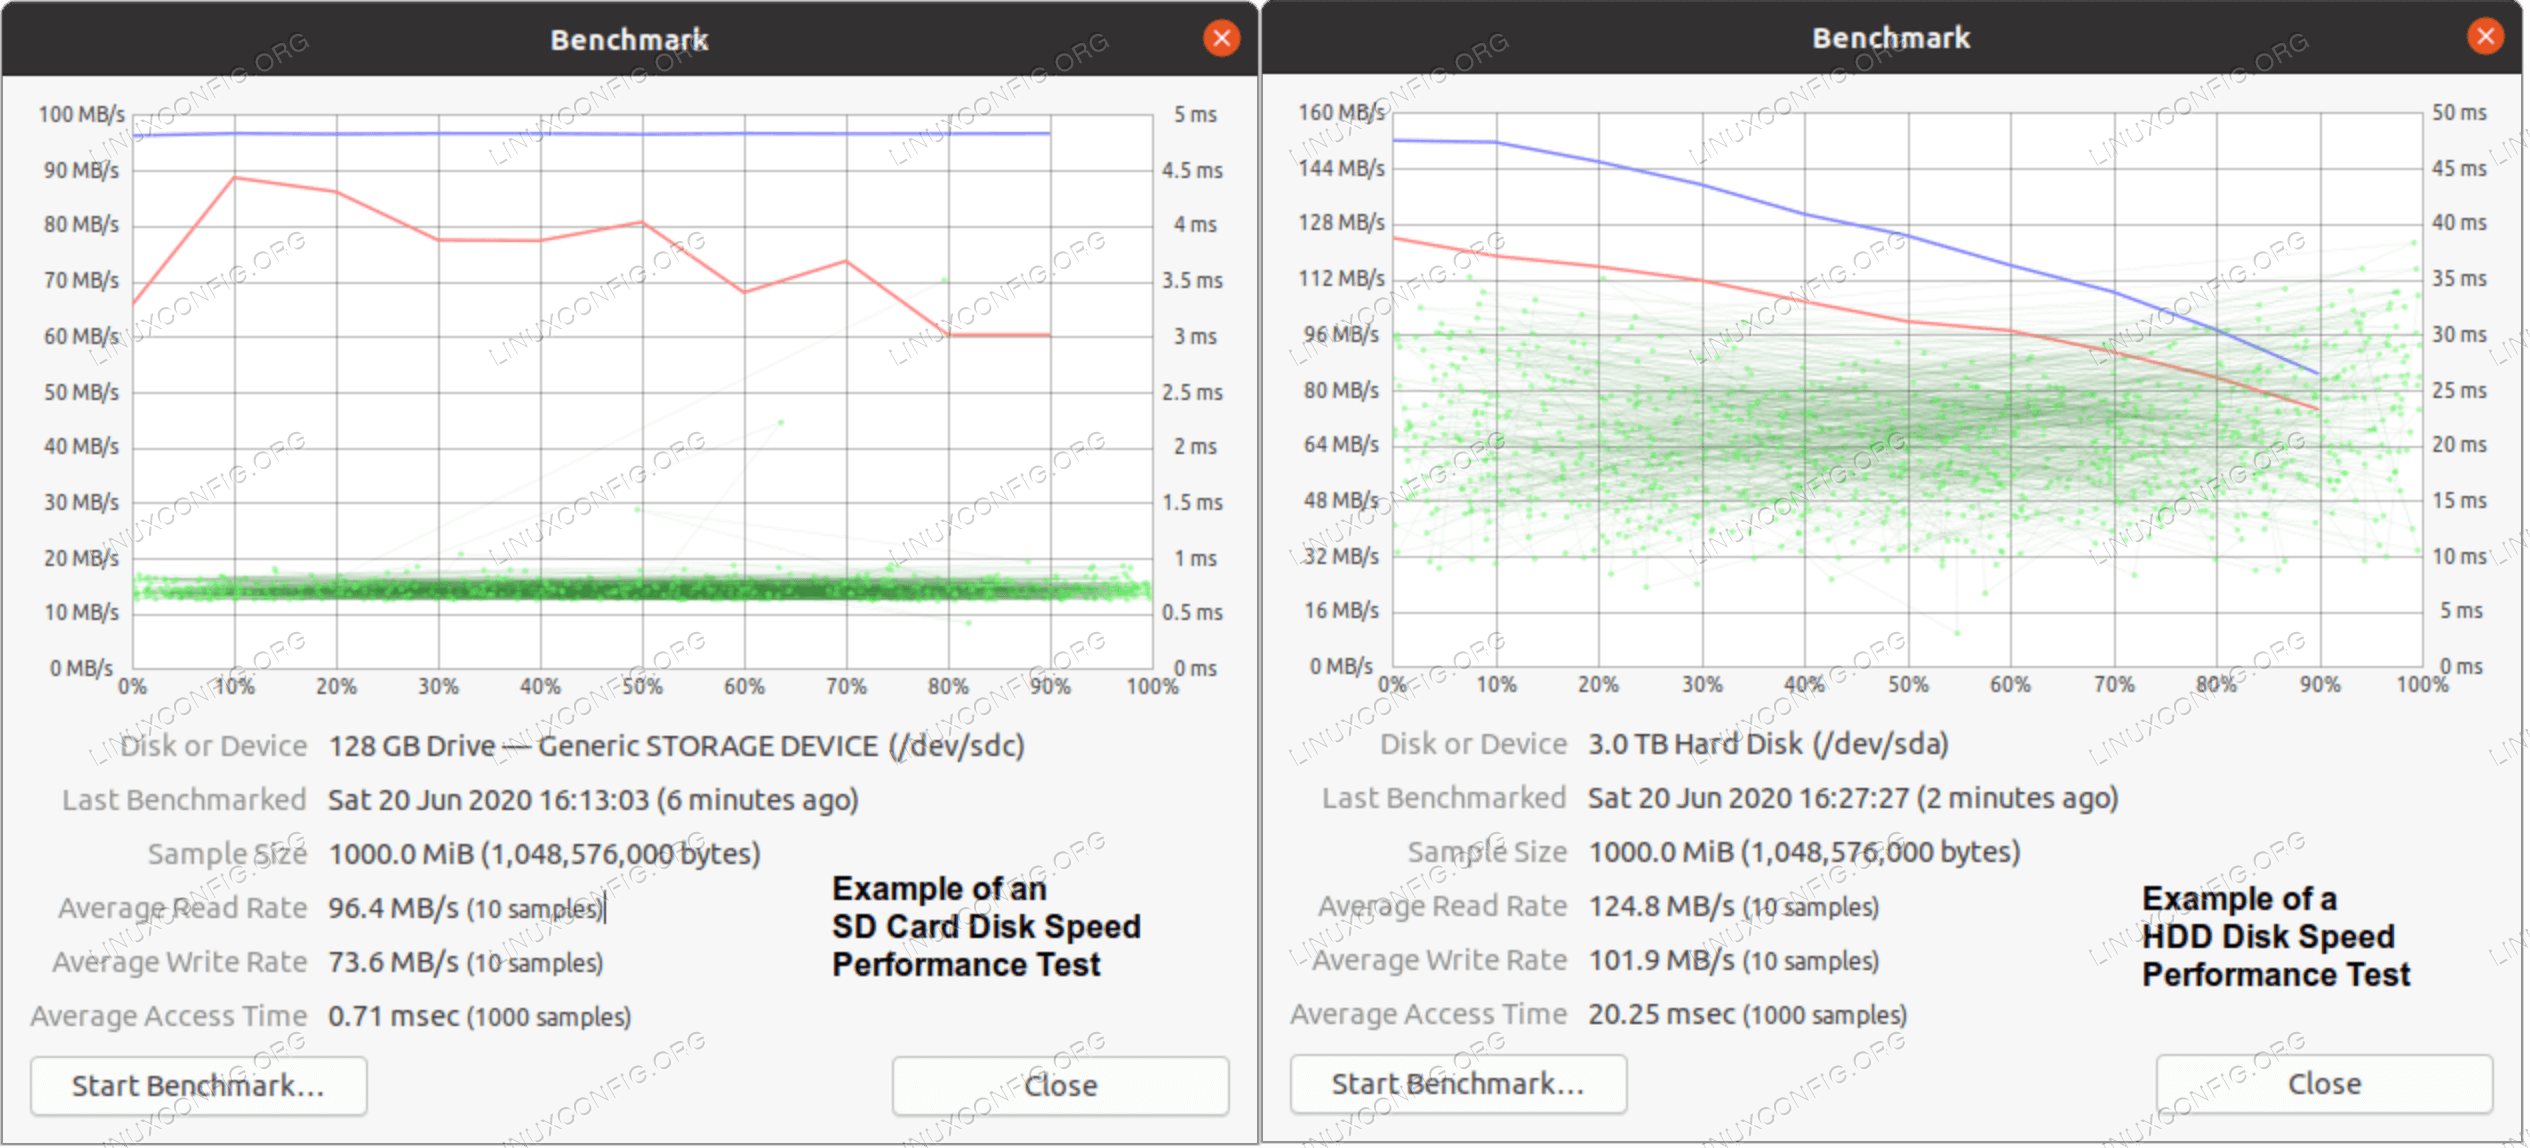 SD vs HDD performance difference